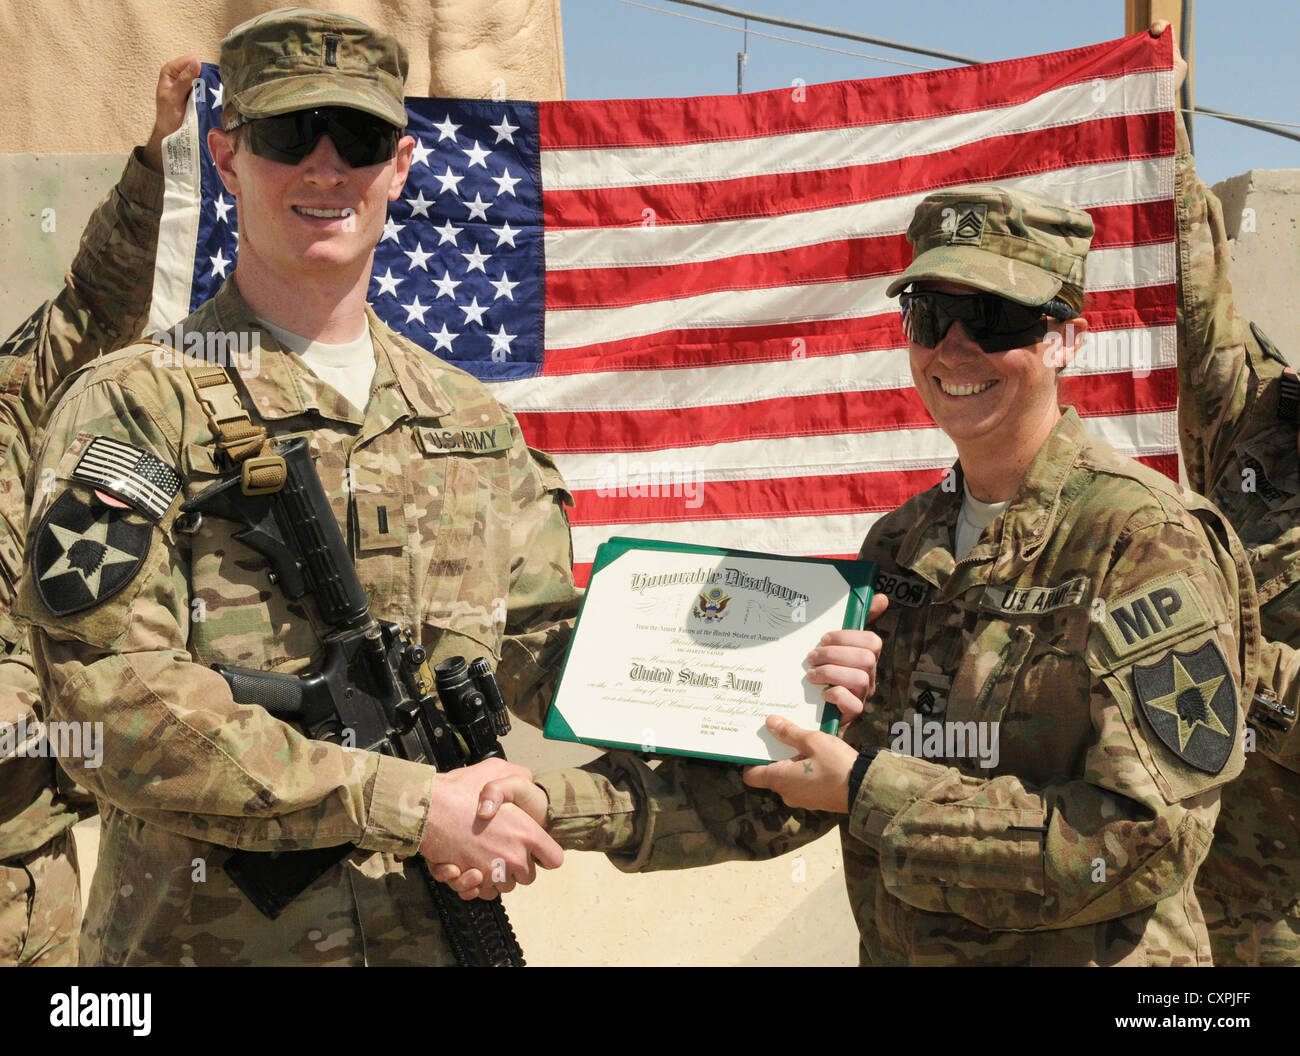 Staff Sgt. Rebecca Osborn, a military police soldier from Daggett, Mich., appears after reenlisting in the Army - Stock Image